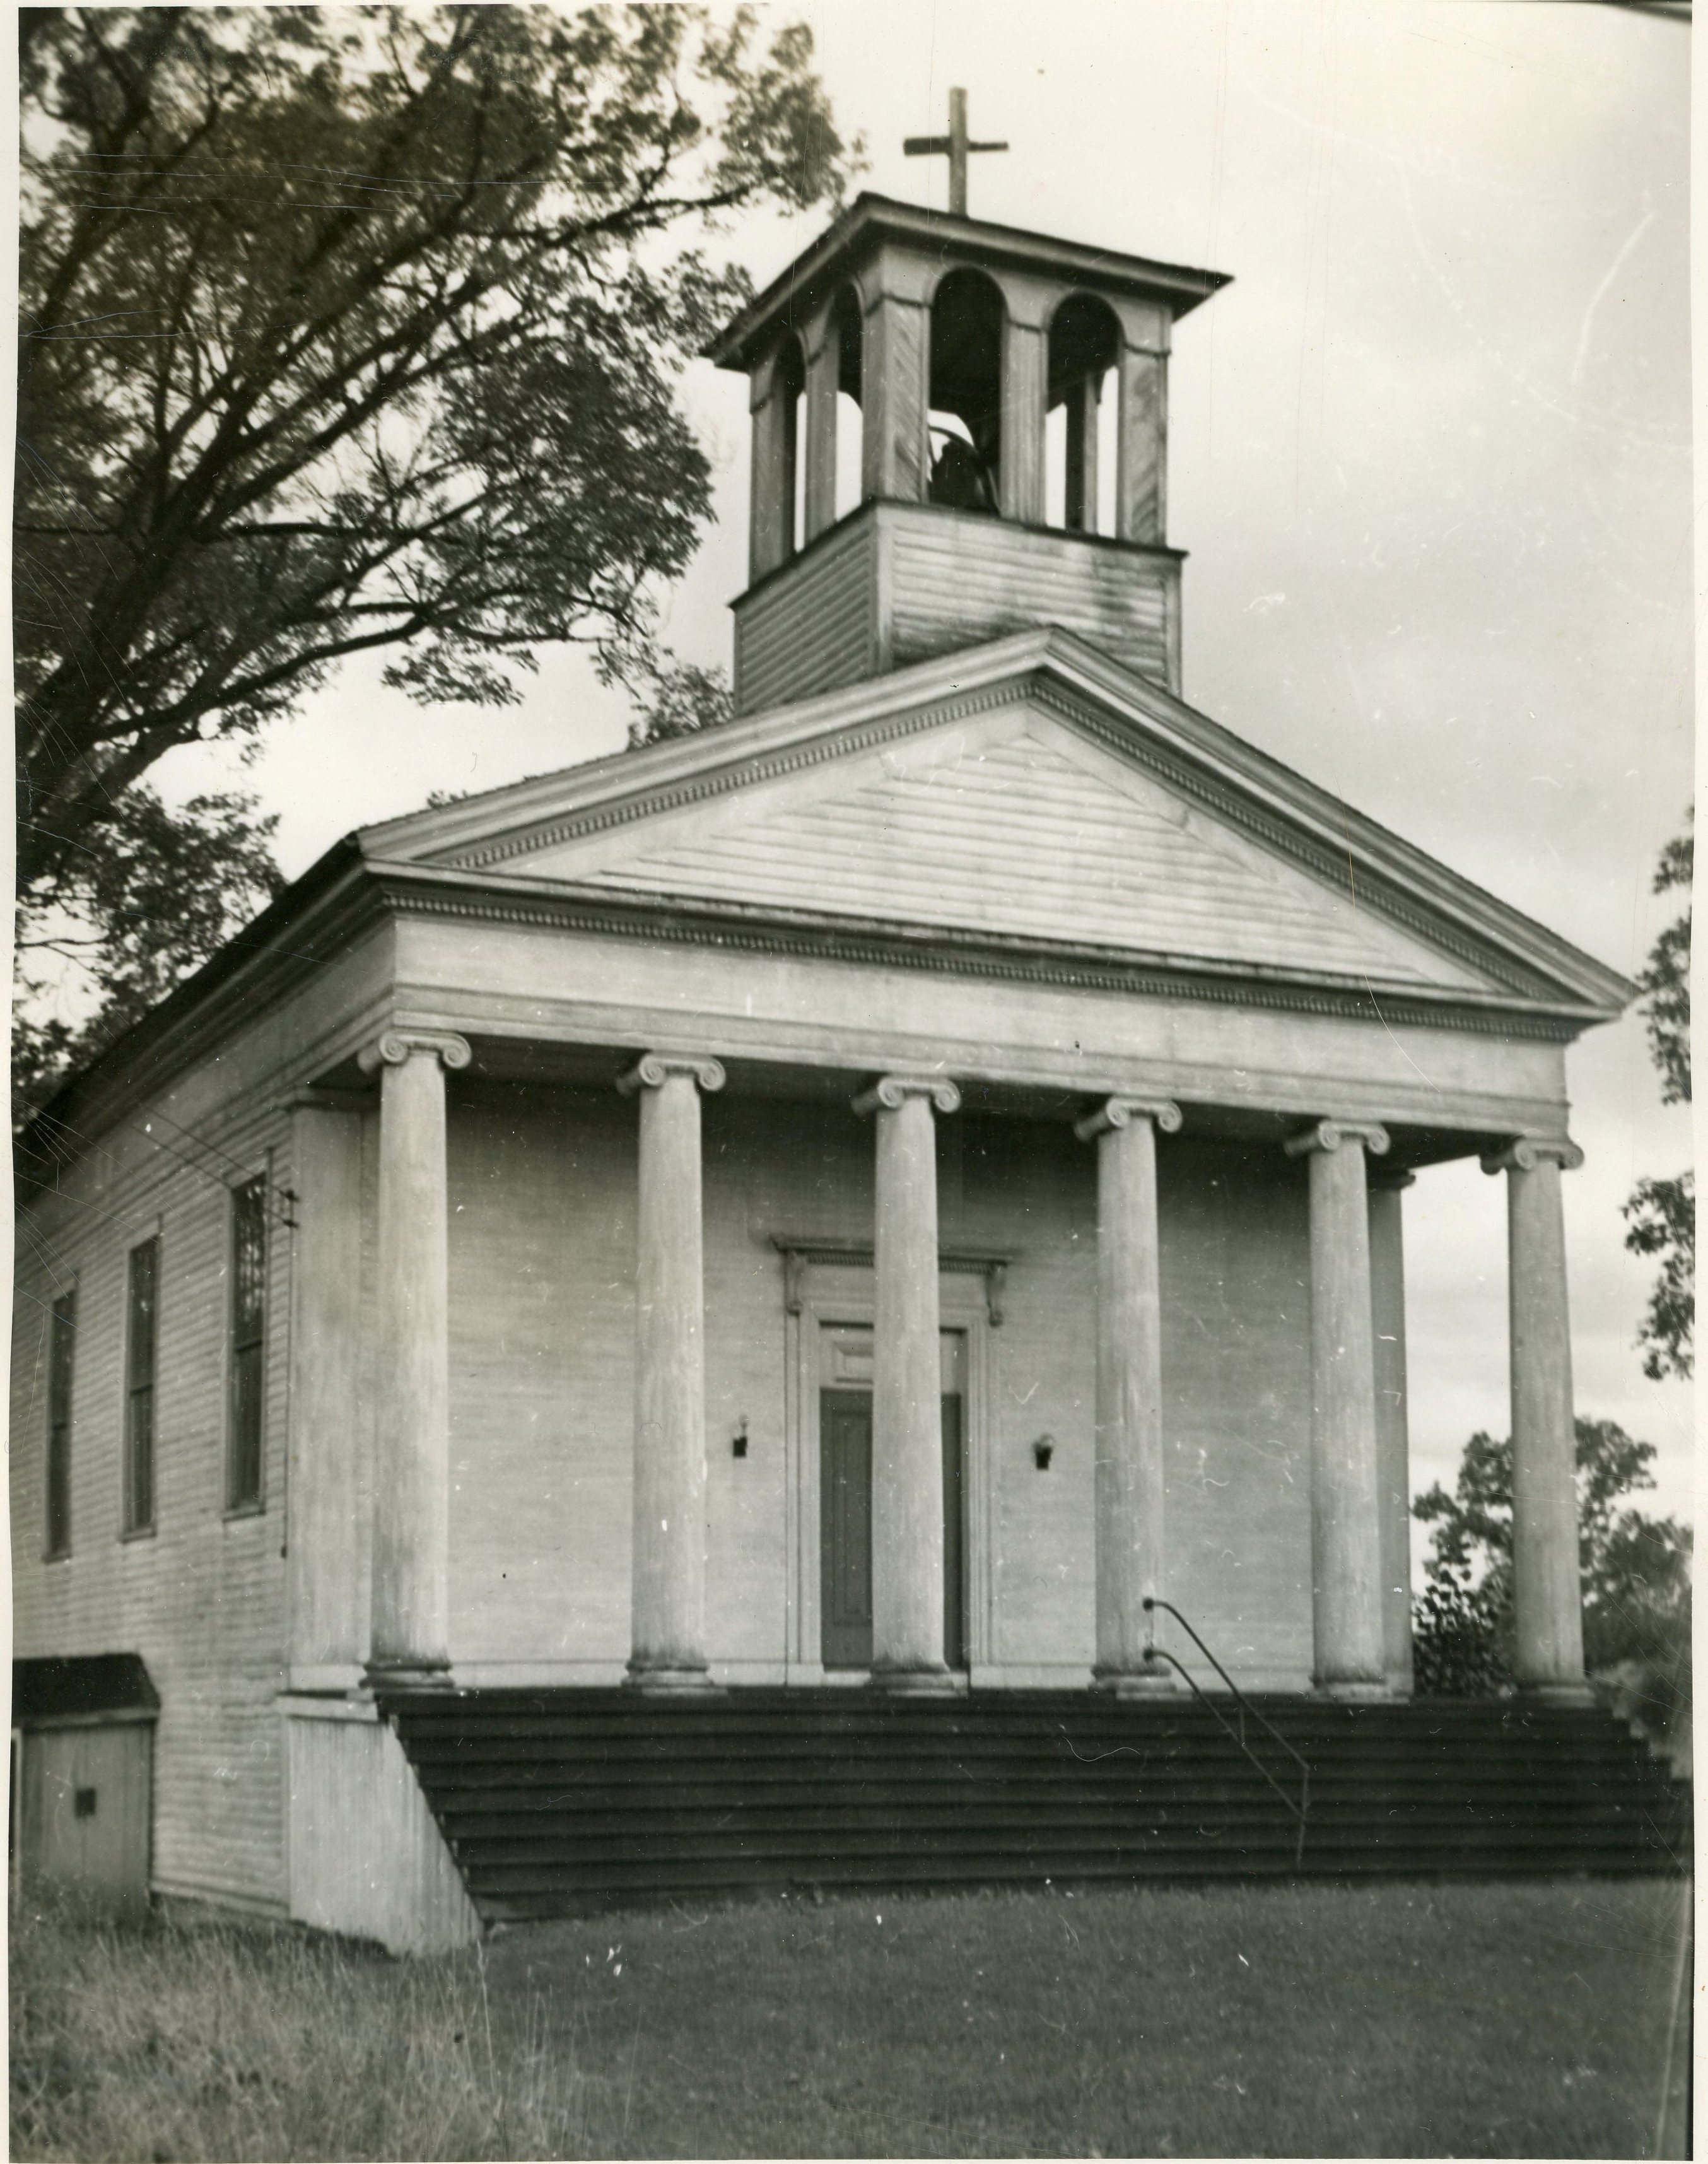 Image of the Greek-Revival style Dutch Reformed Church in Piffard